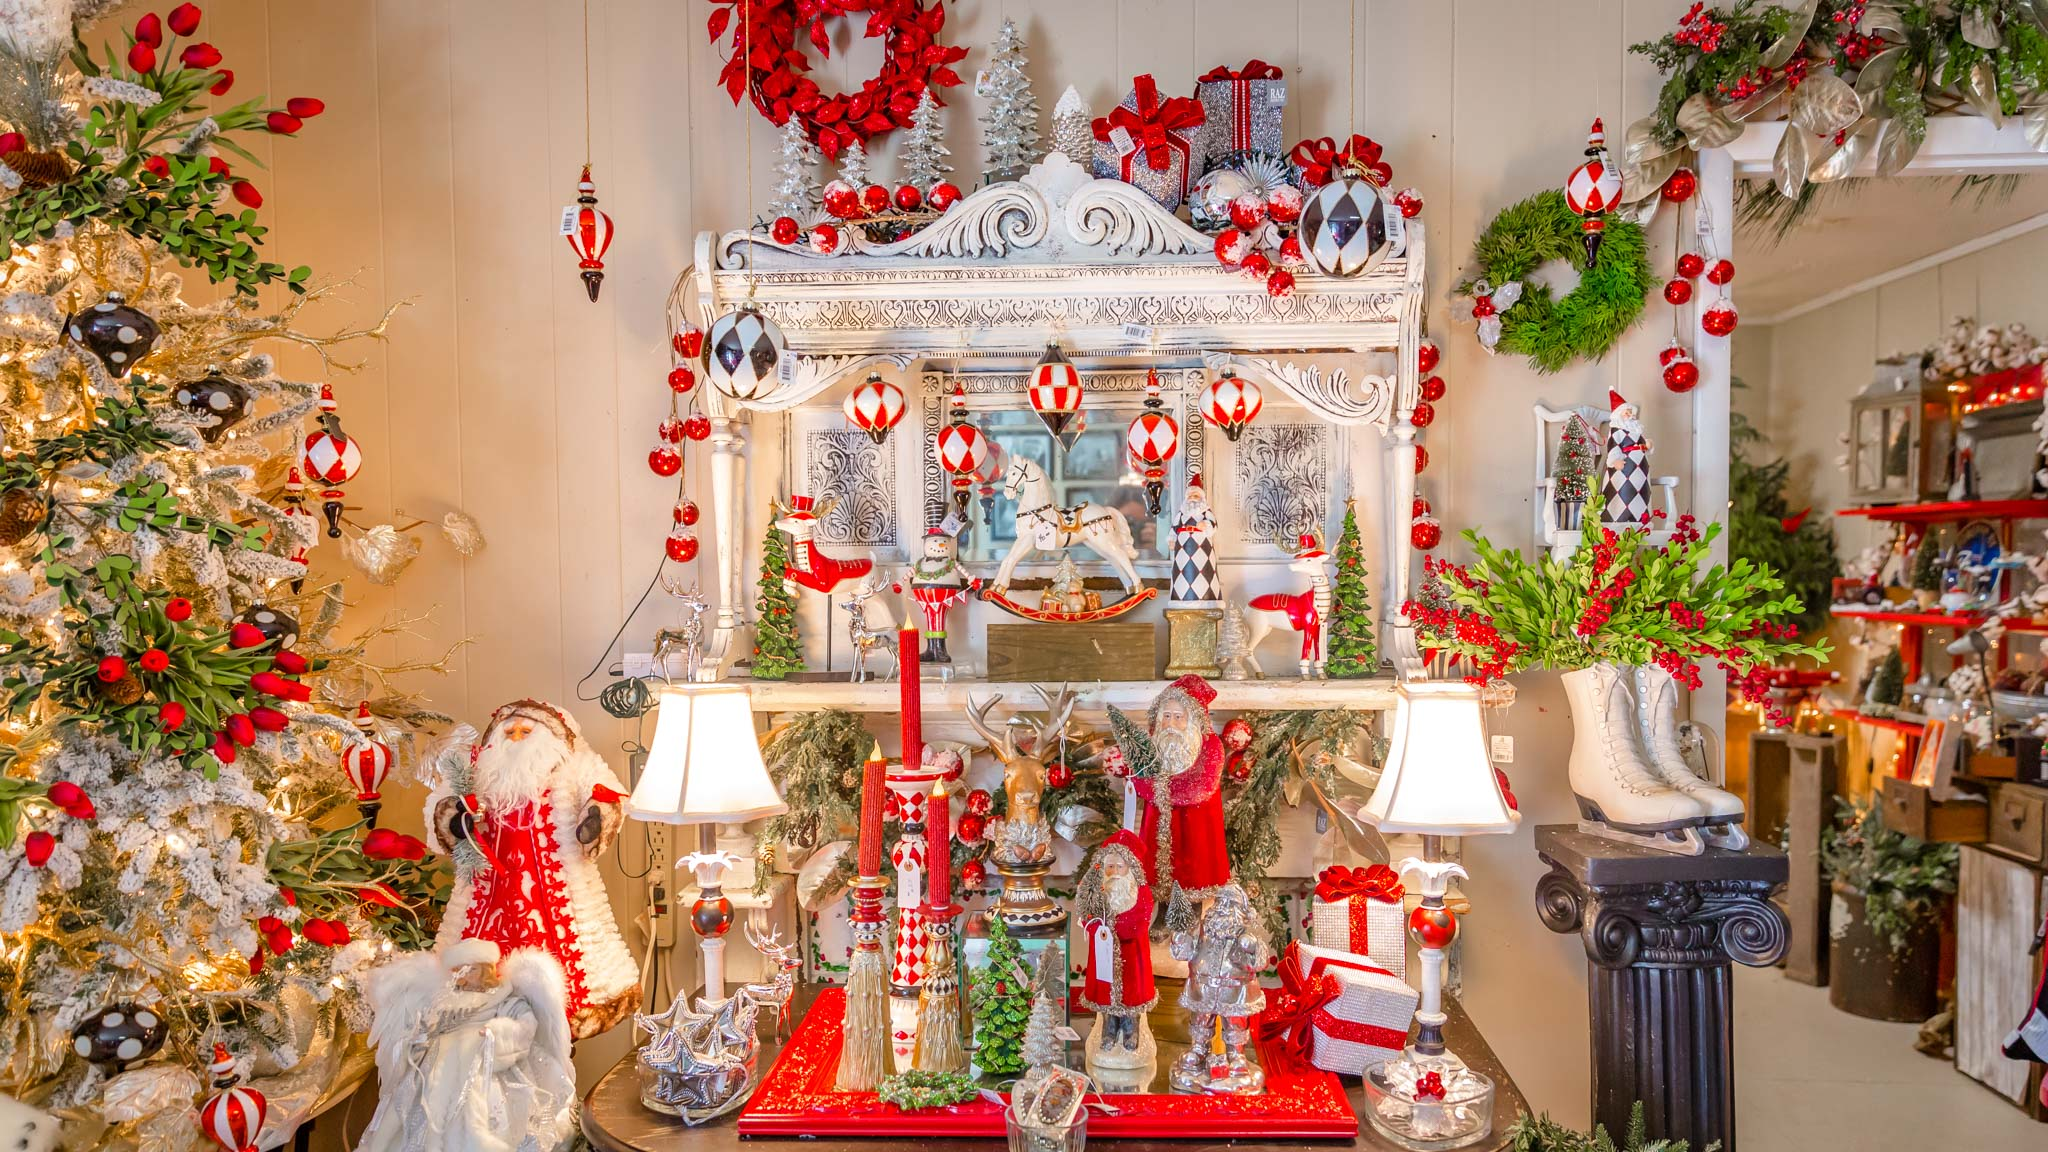 The Christmas shop on site designed by the owner, Carly.